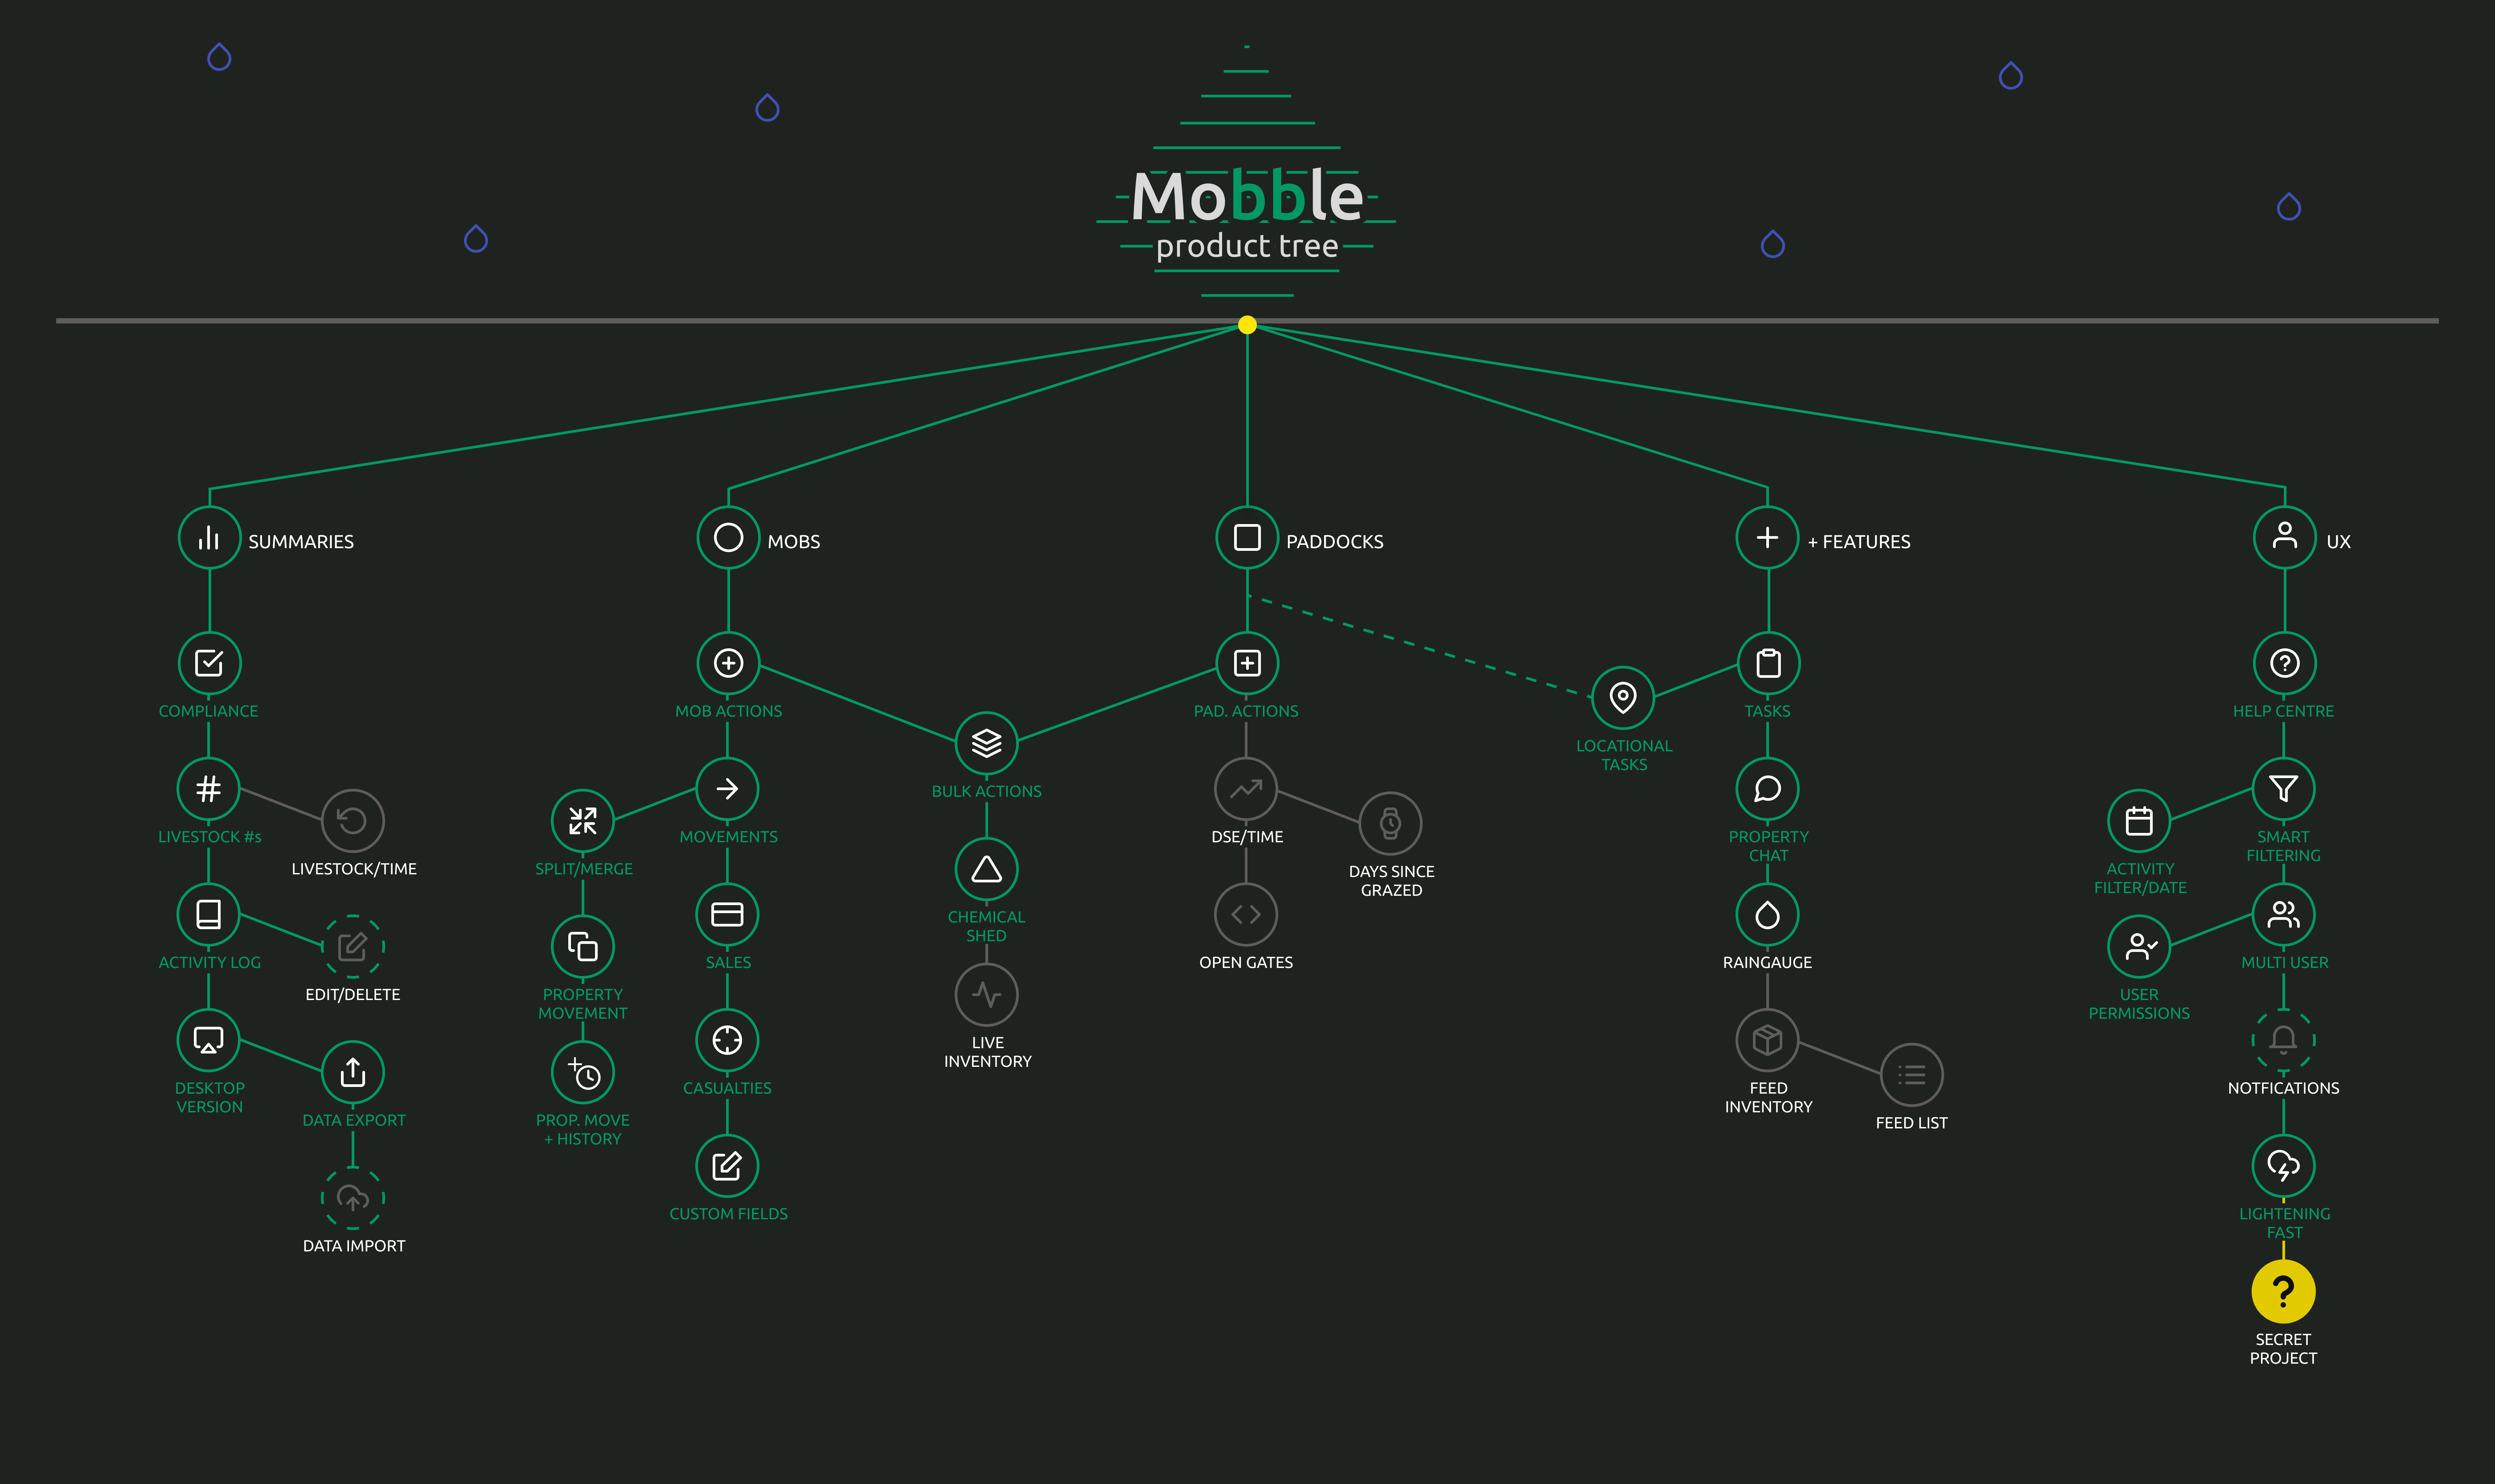 The Mobble Product Tree